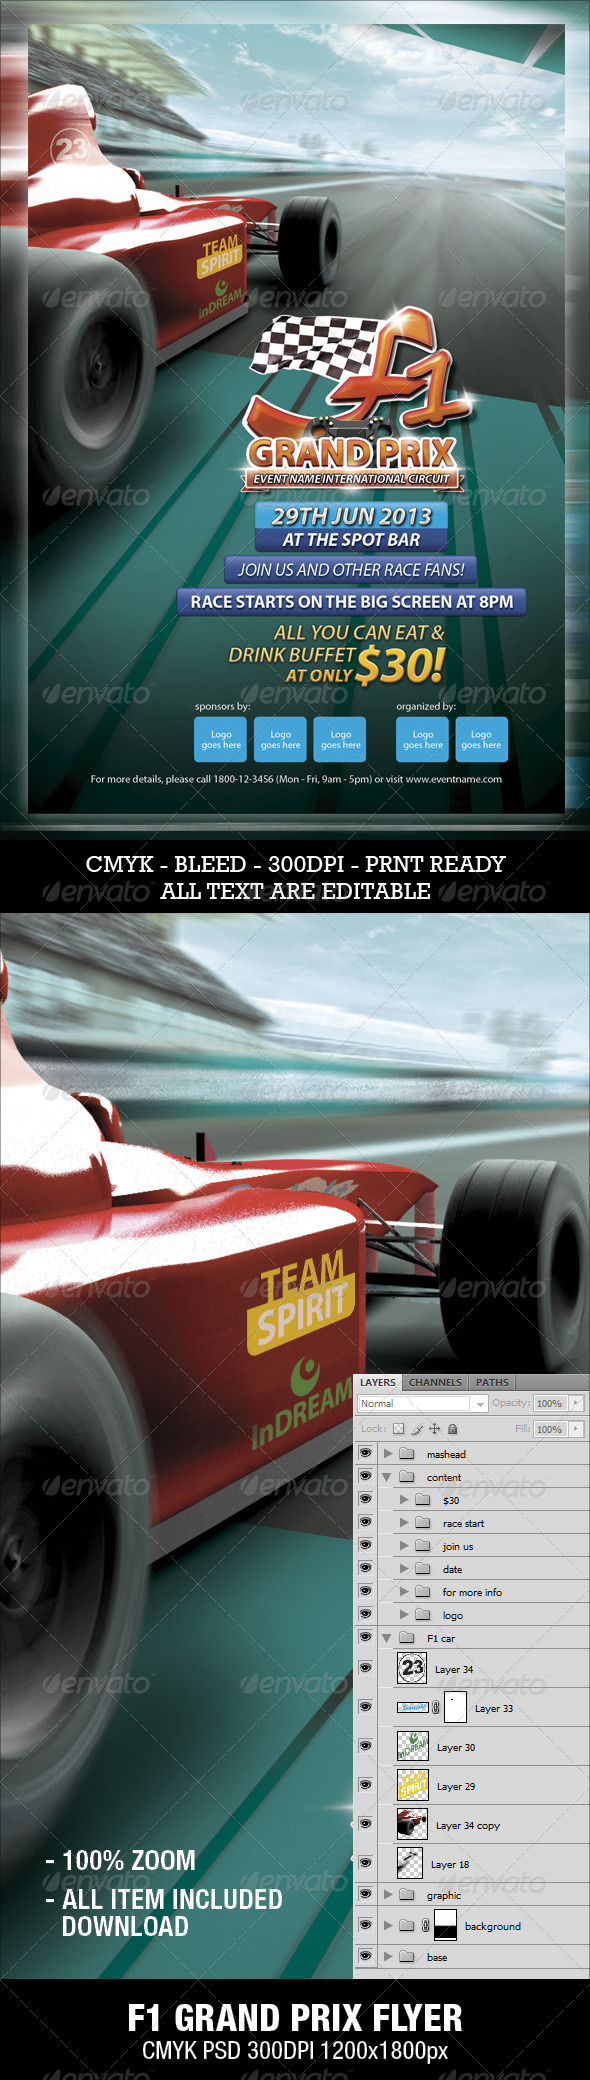 F1 Grand Prix Flyer - Sports Events